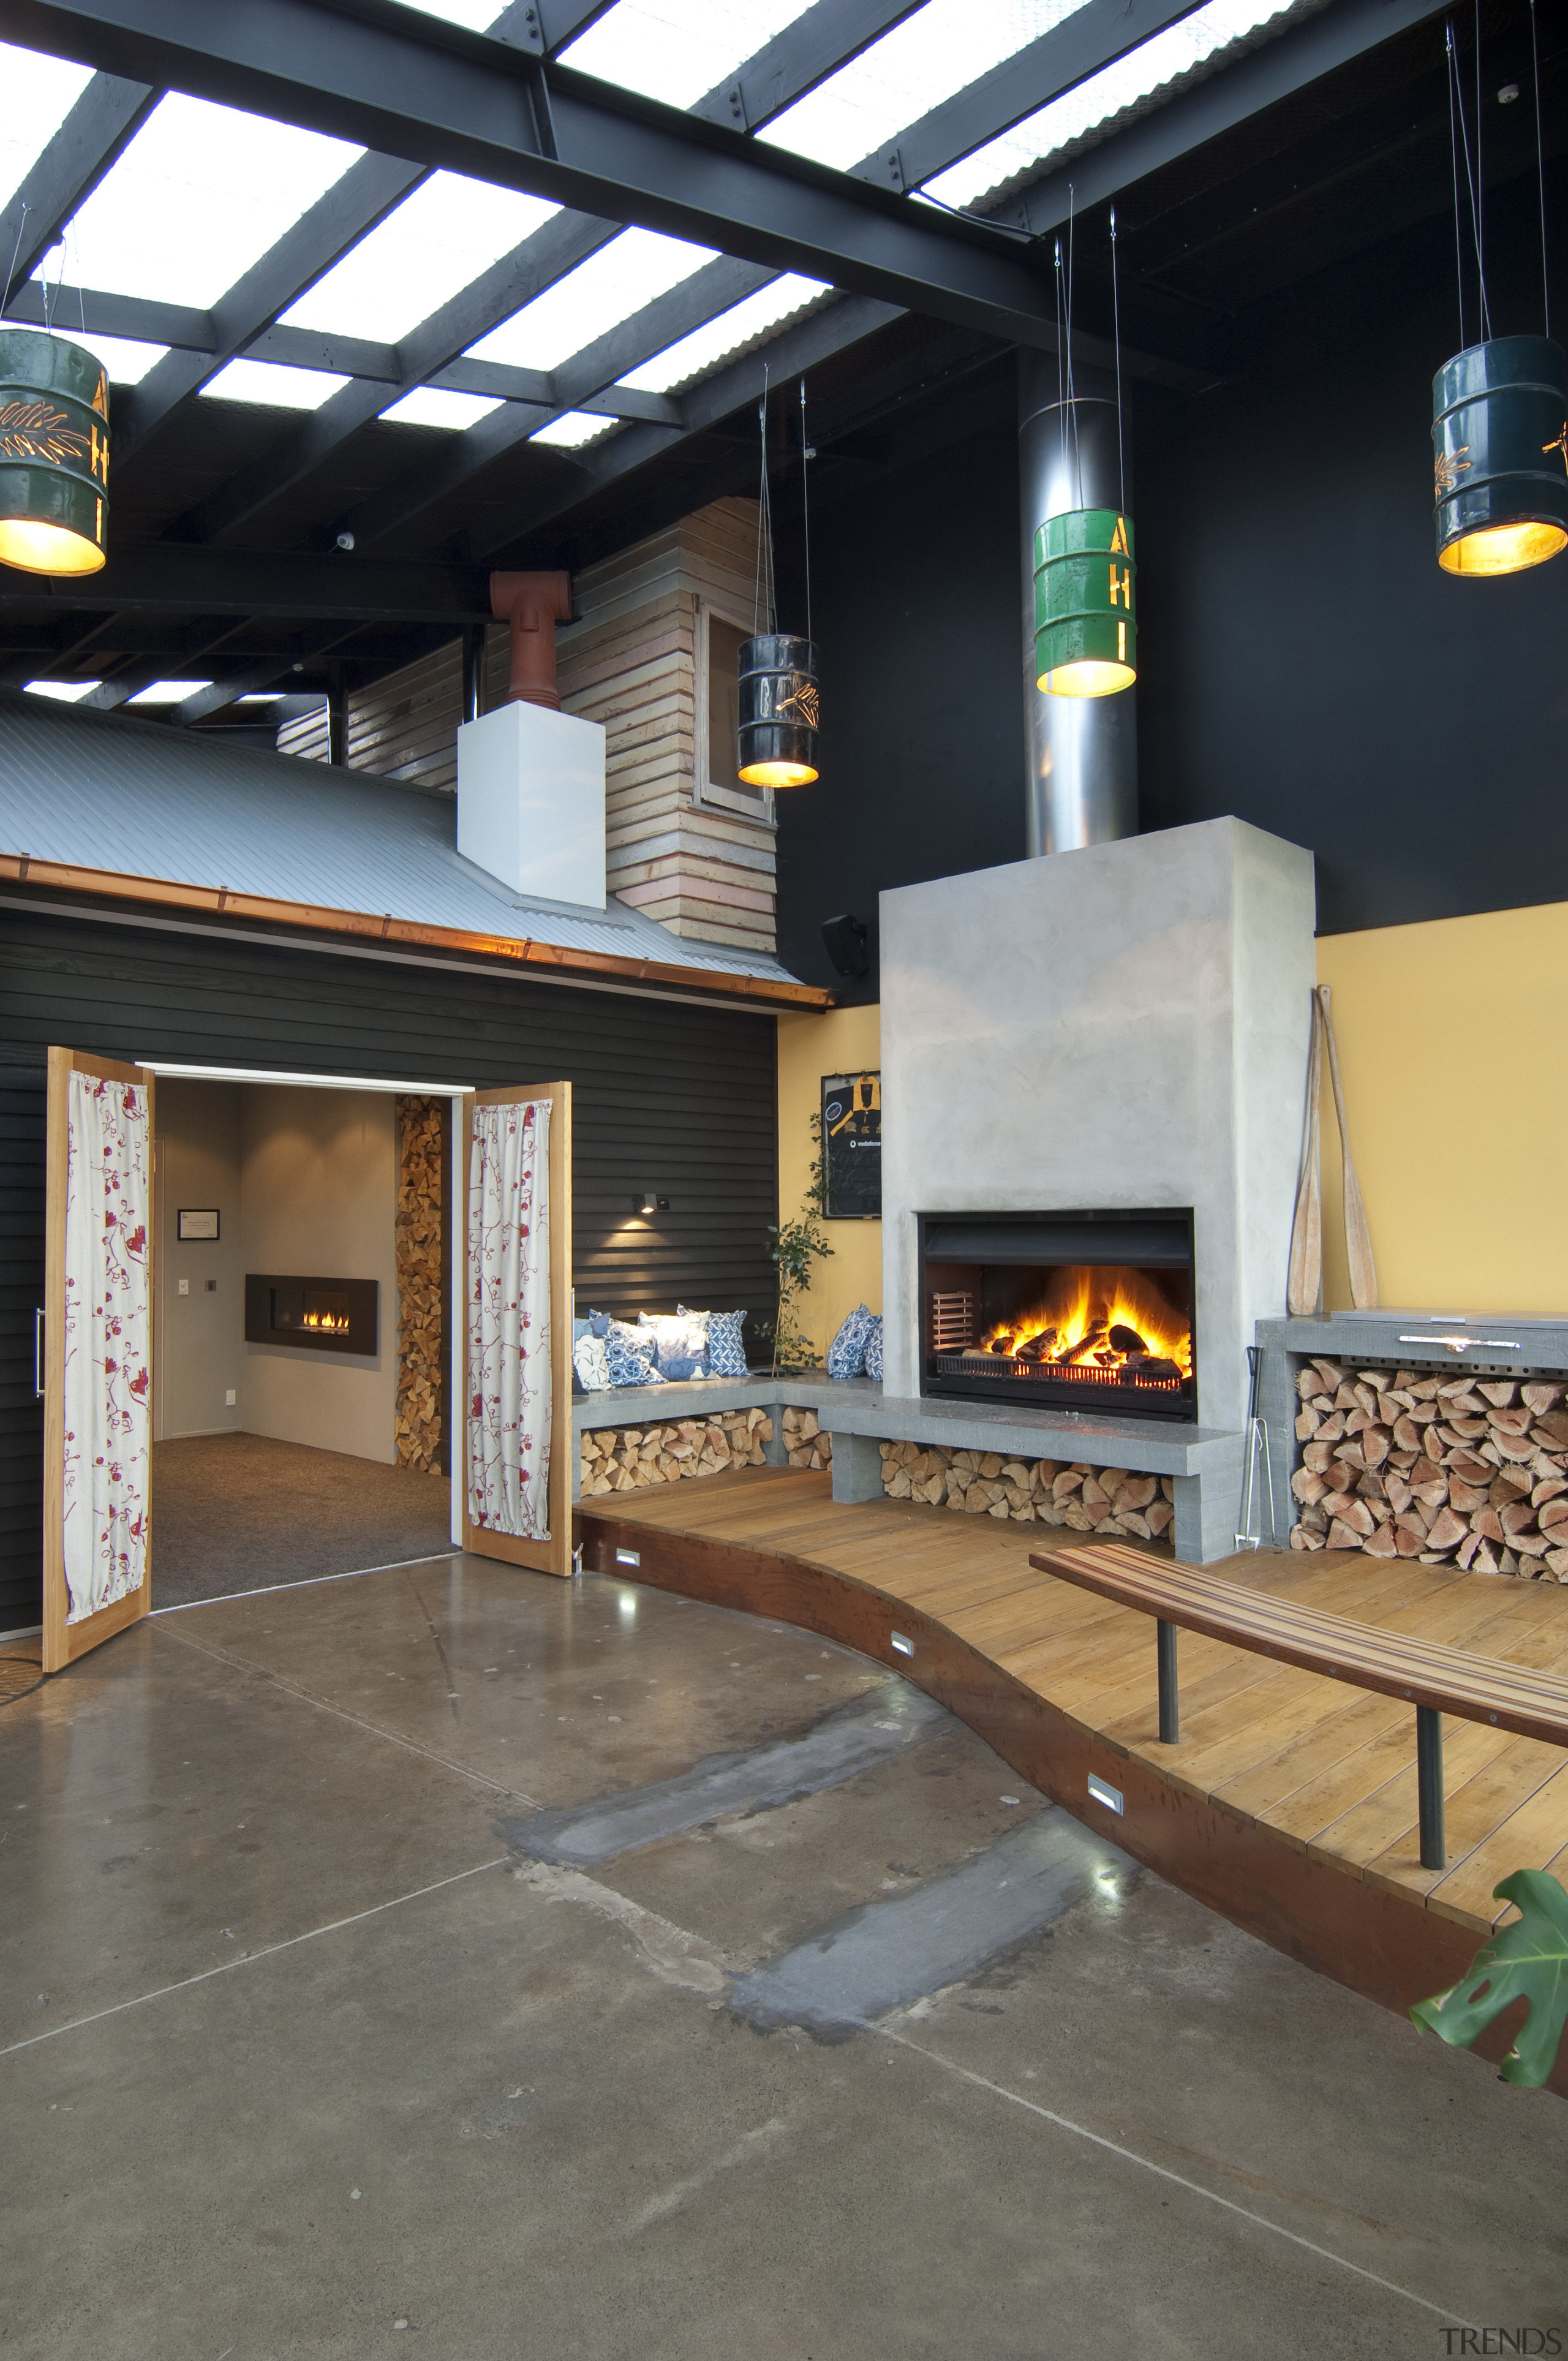 Insitu Displays In A Retail Fireplace Showroom T Trends